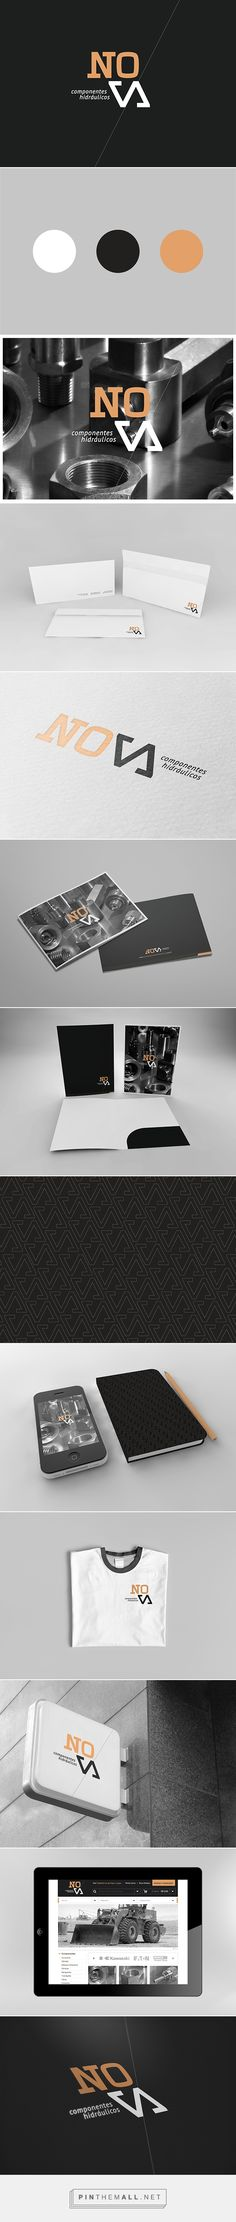 Nova Corporate Identity on Behance | Fivestar Branding – Design and Branding Agency & Inspiration Gallery